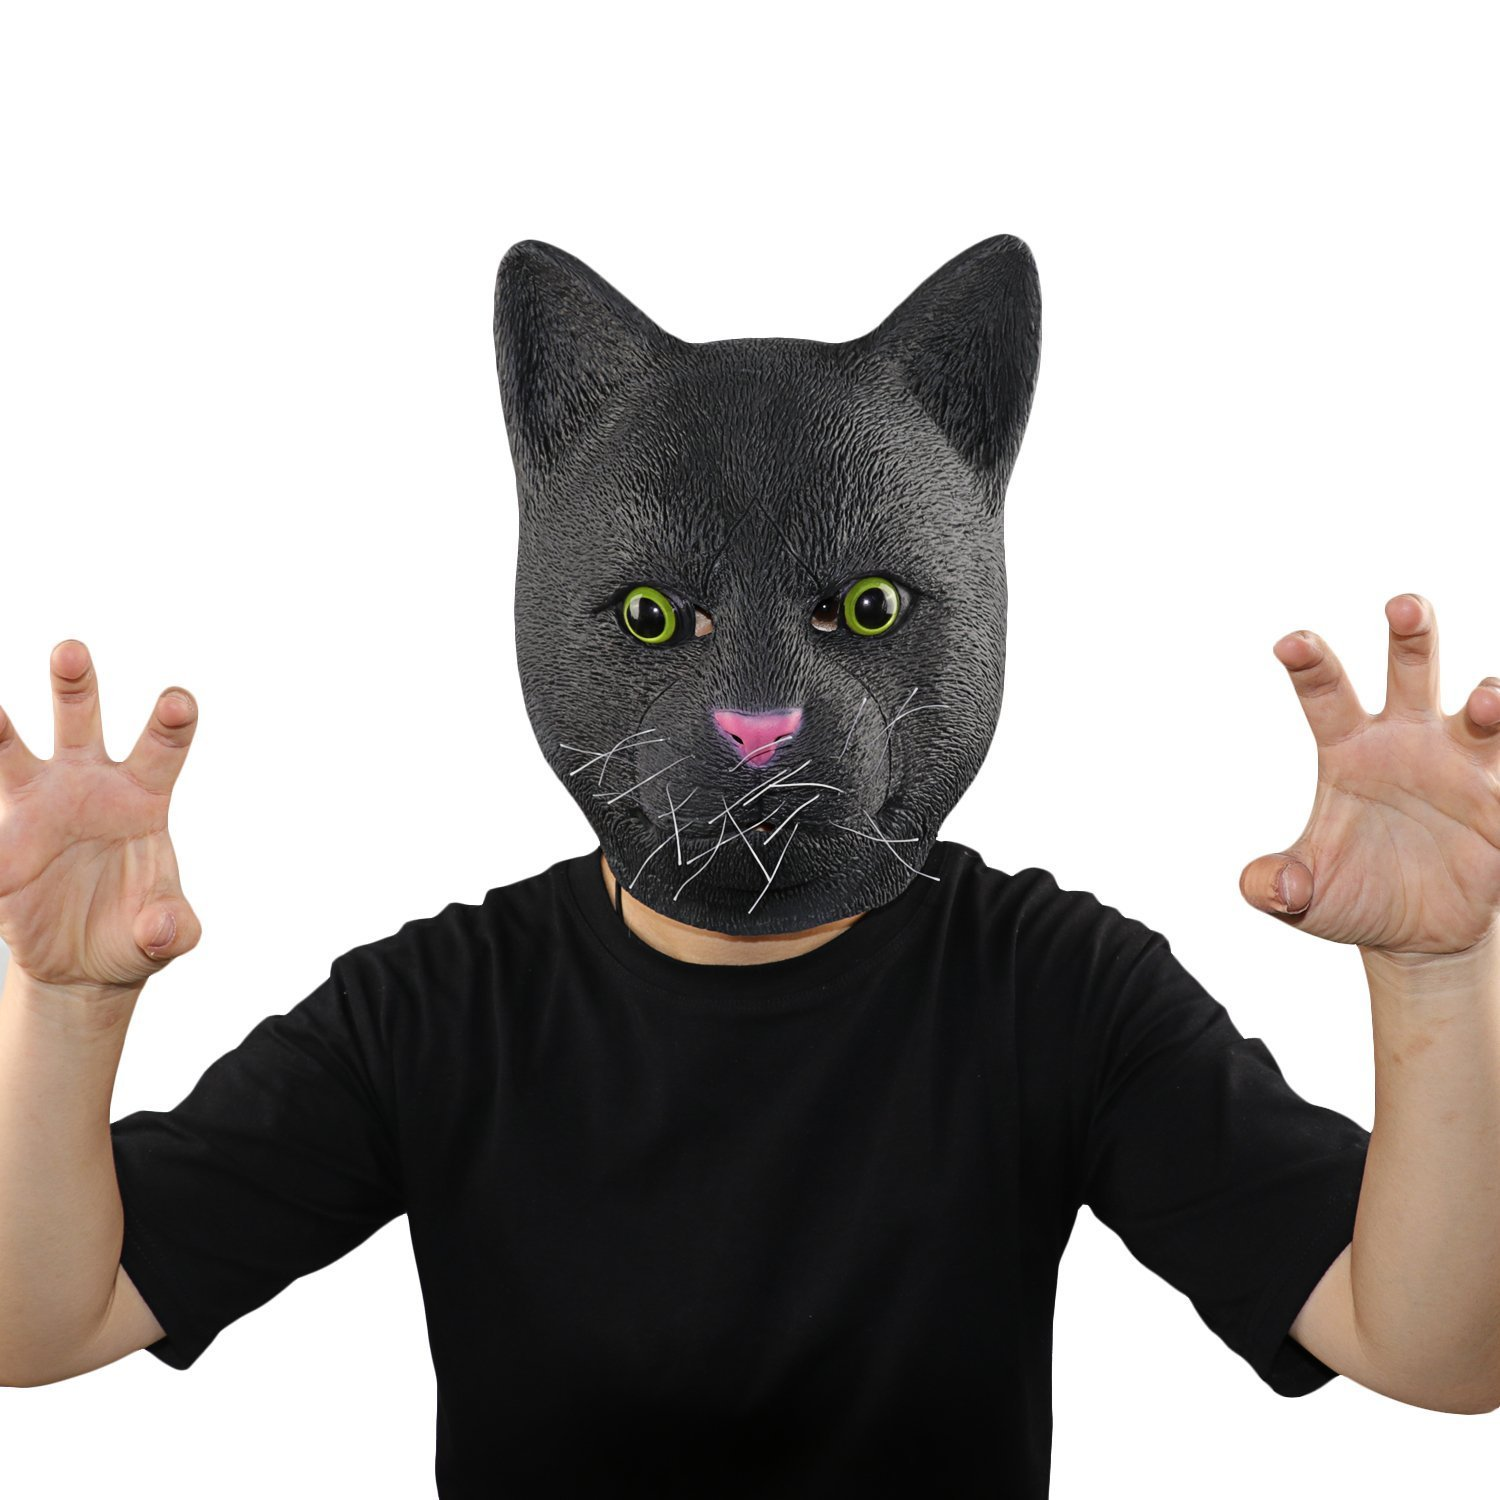 XIAO MO GU Latex Halloween Costume Decorations for Adults and Kids Animal Head Mask Black Cat